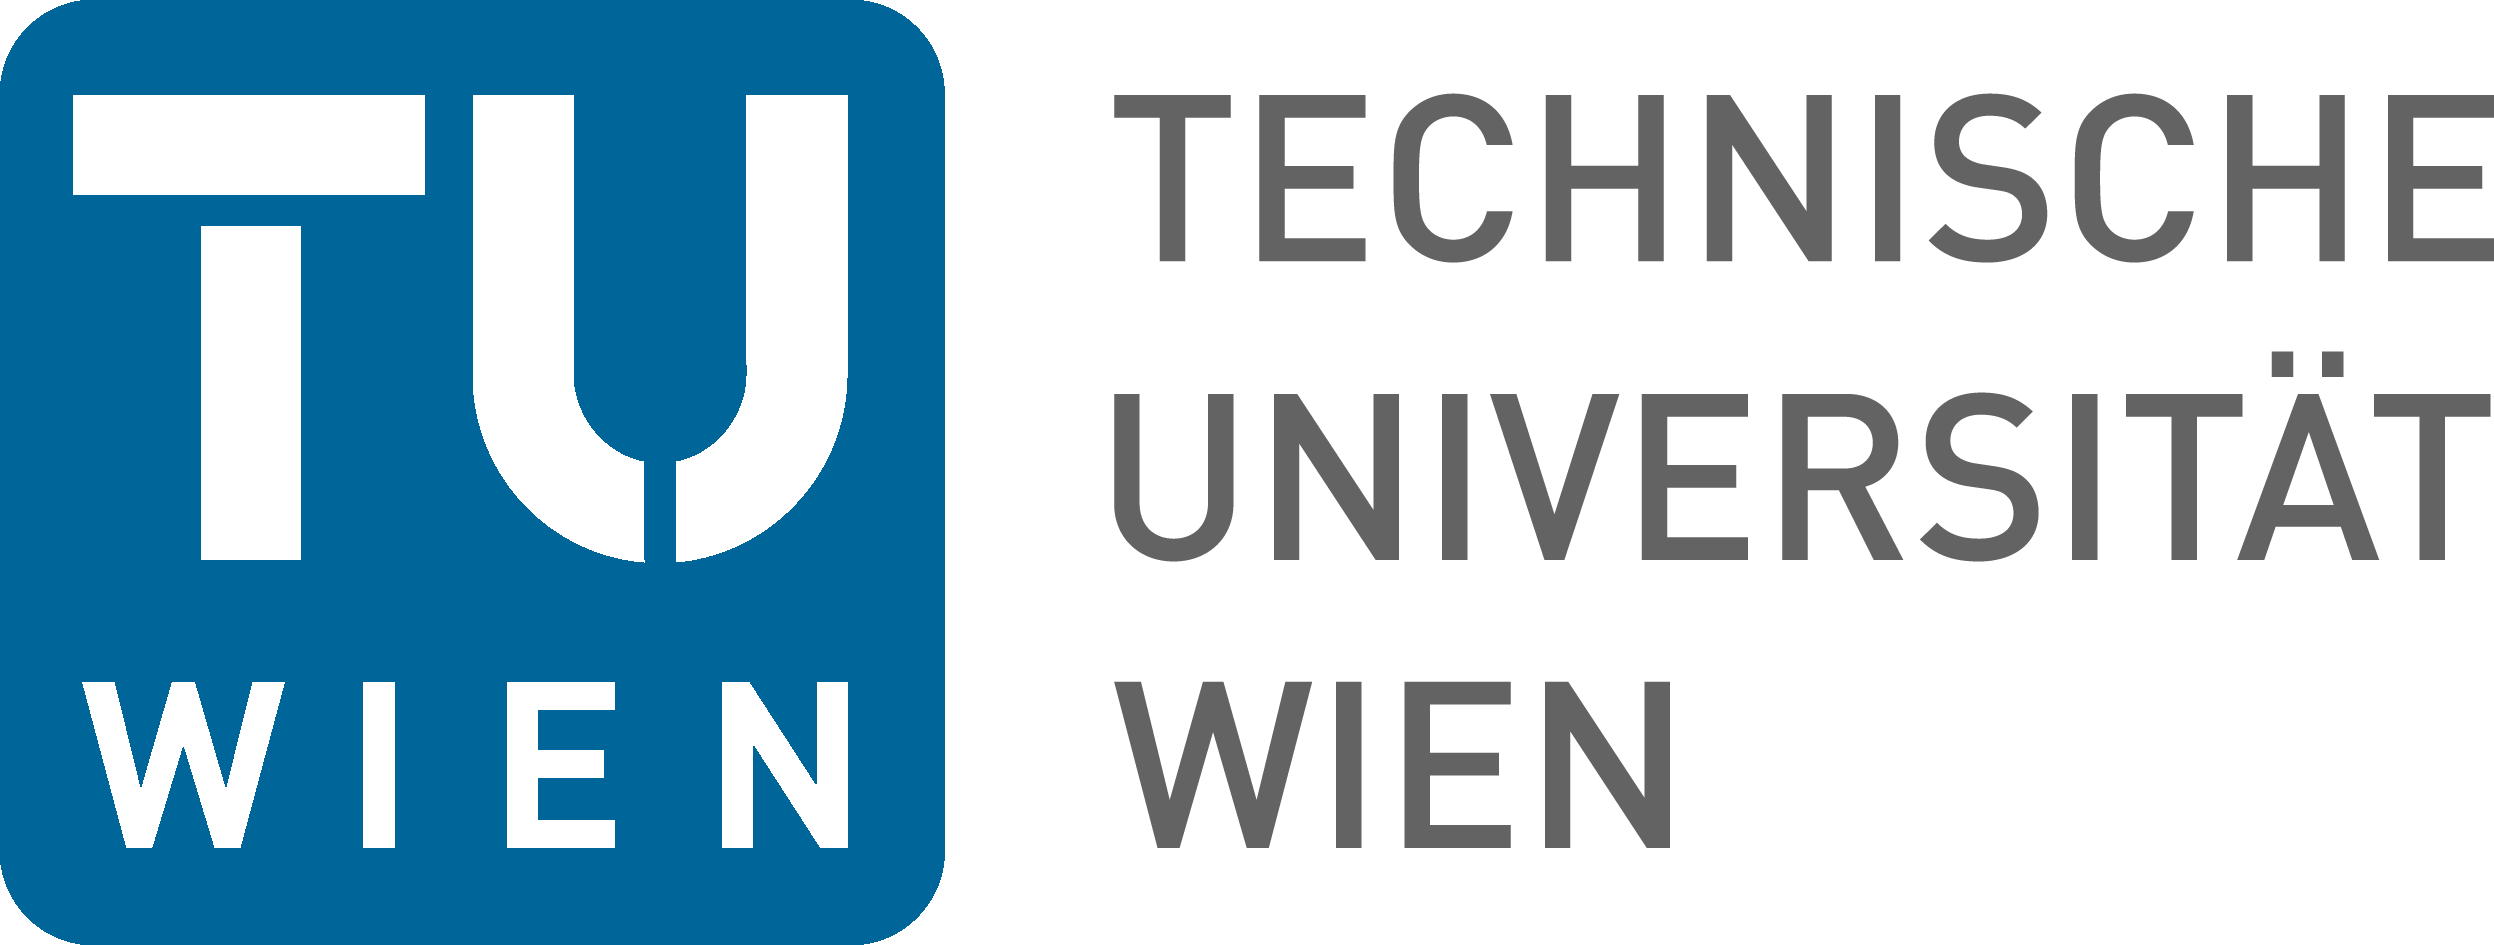 Vienna University of Technology logo